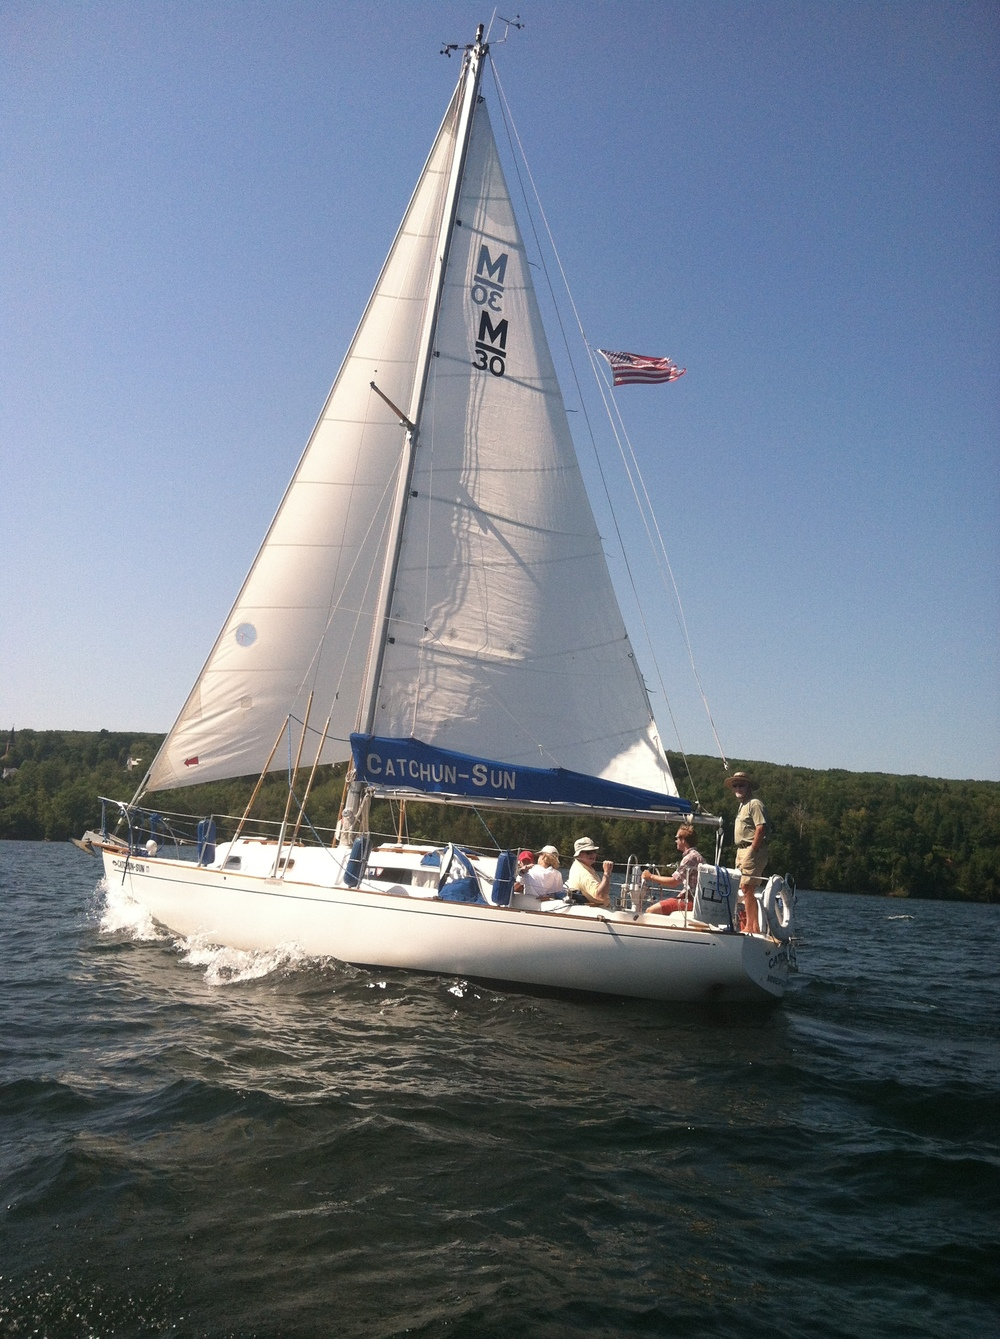 Sailboat in Chequamegon Bay